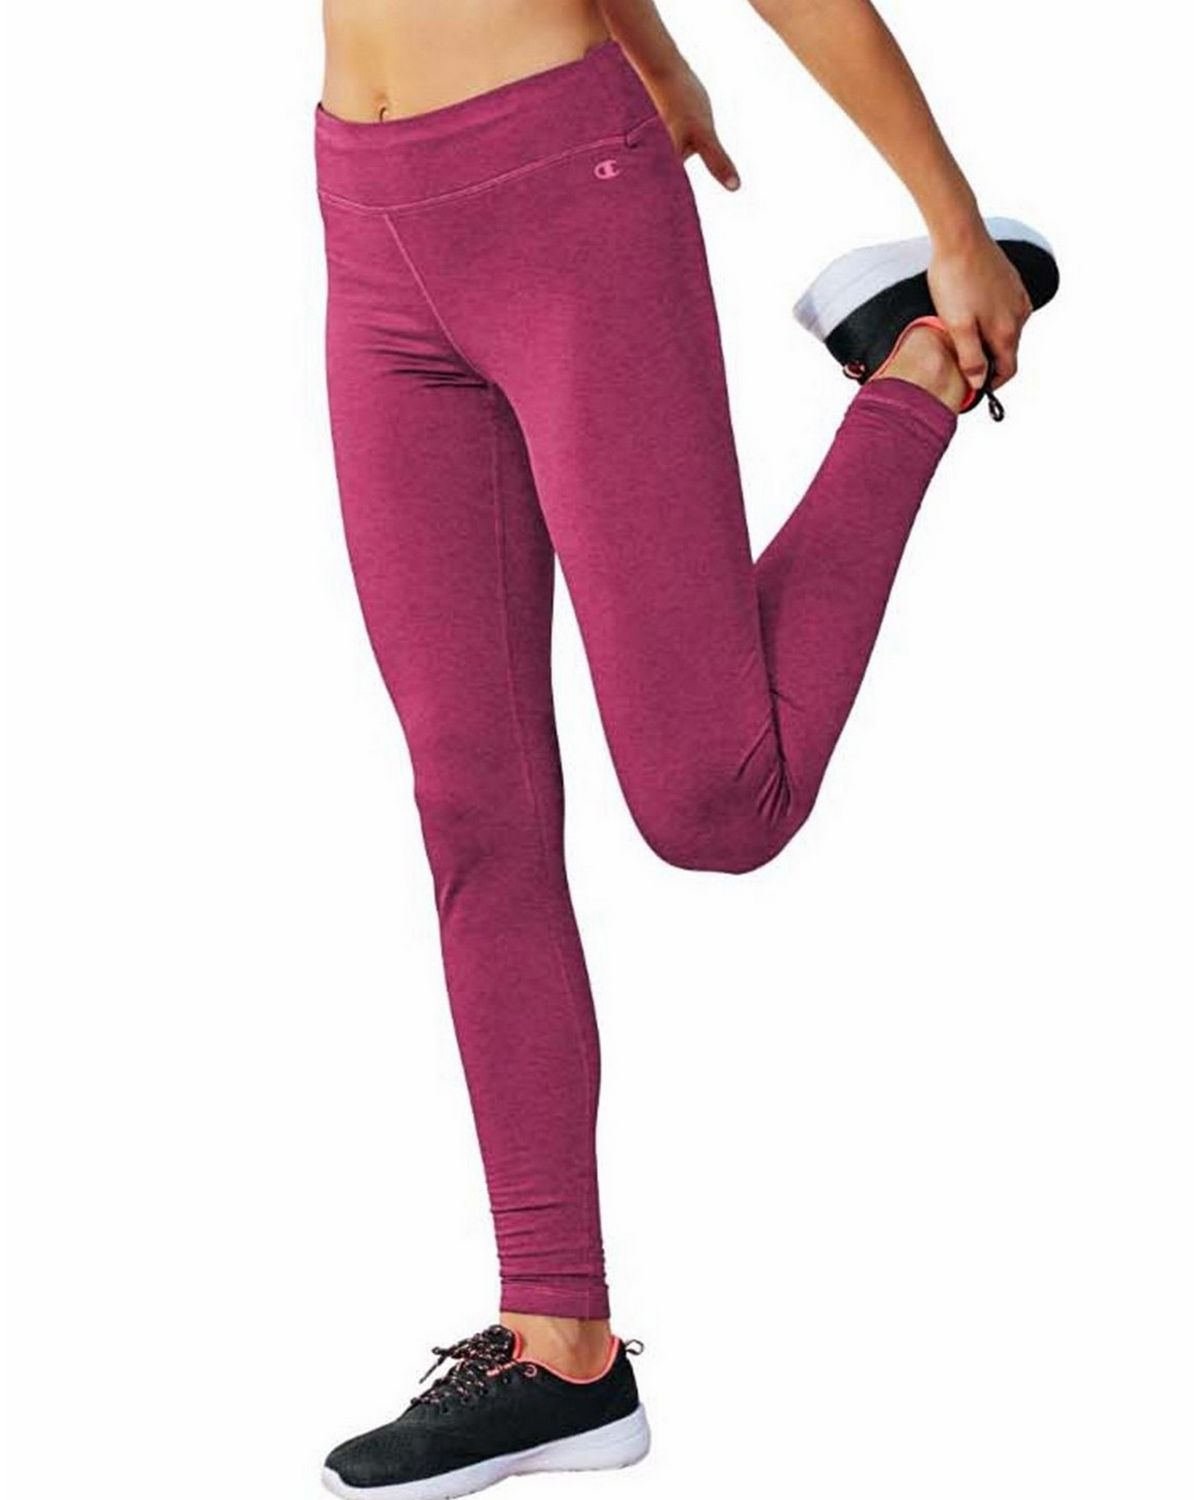 Champion M9518 Tech Fleece Tights - Berry Delight Heather - L M9518